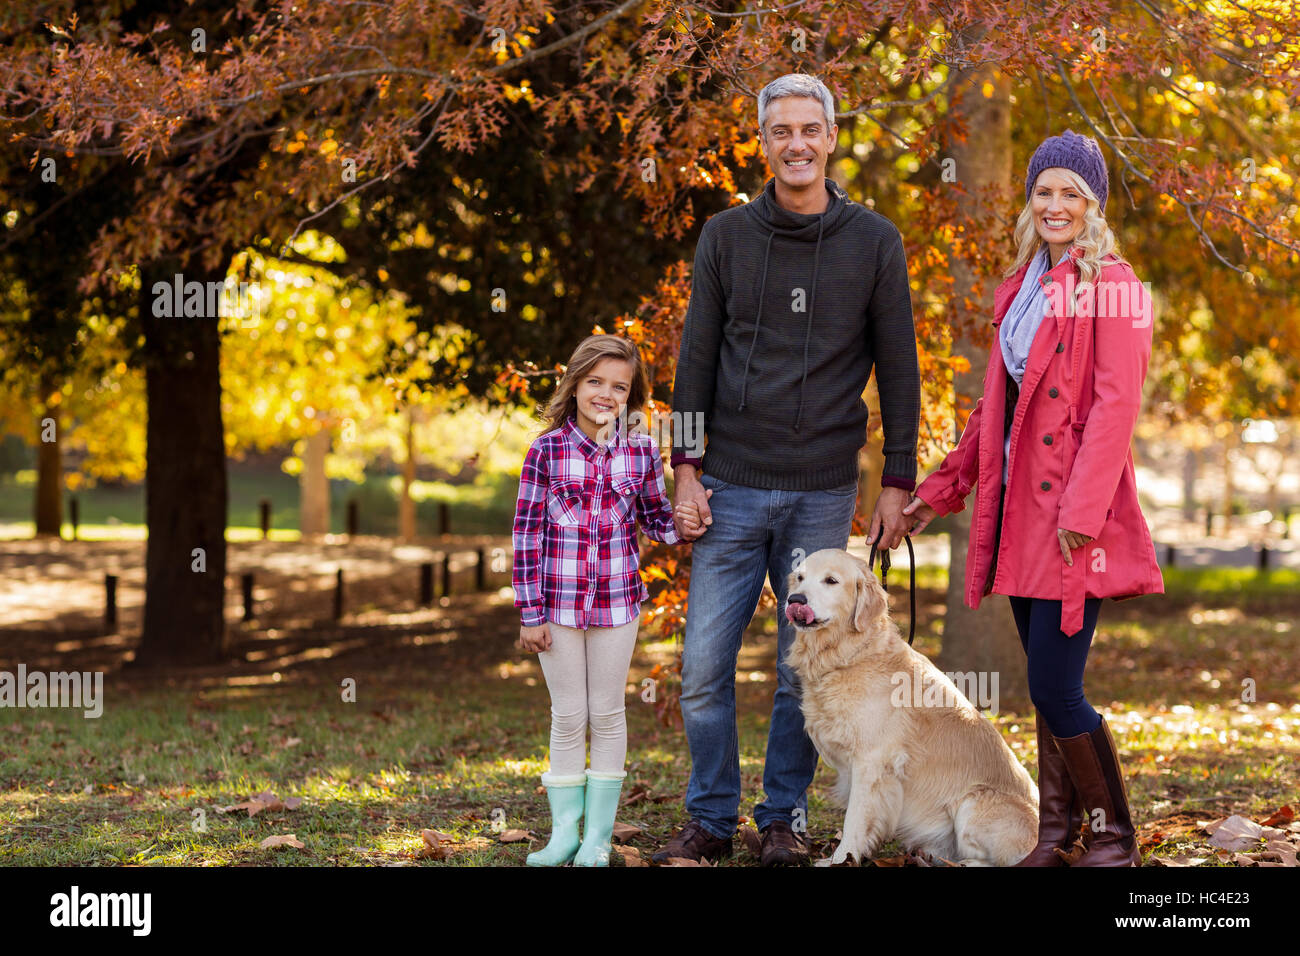 Happy family with dog at park - Stock Image